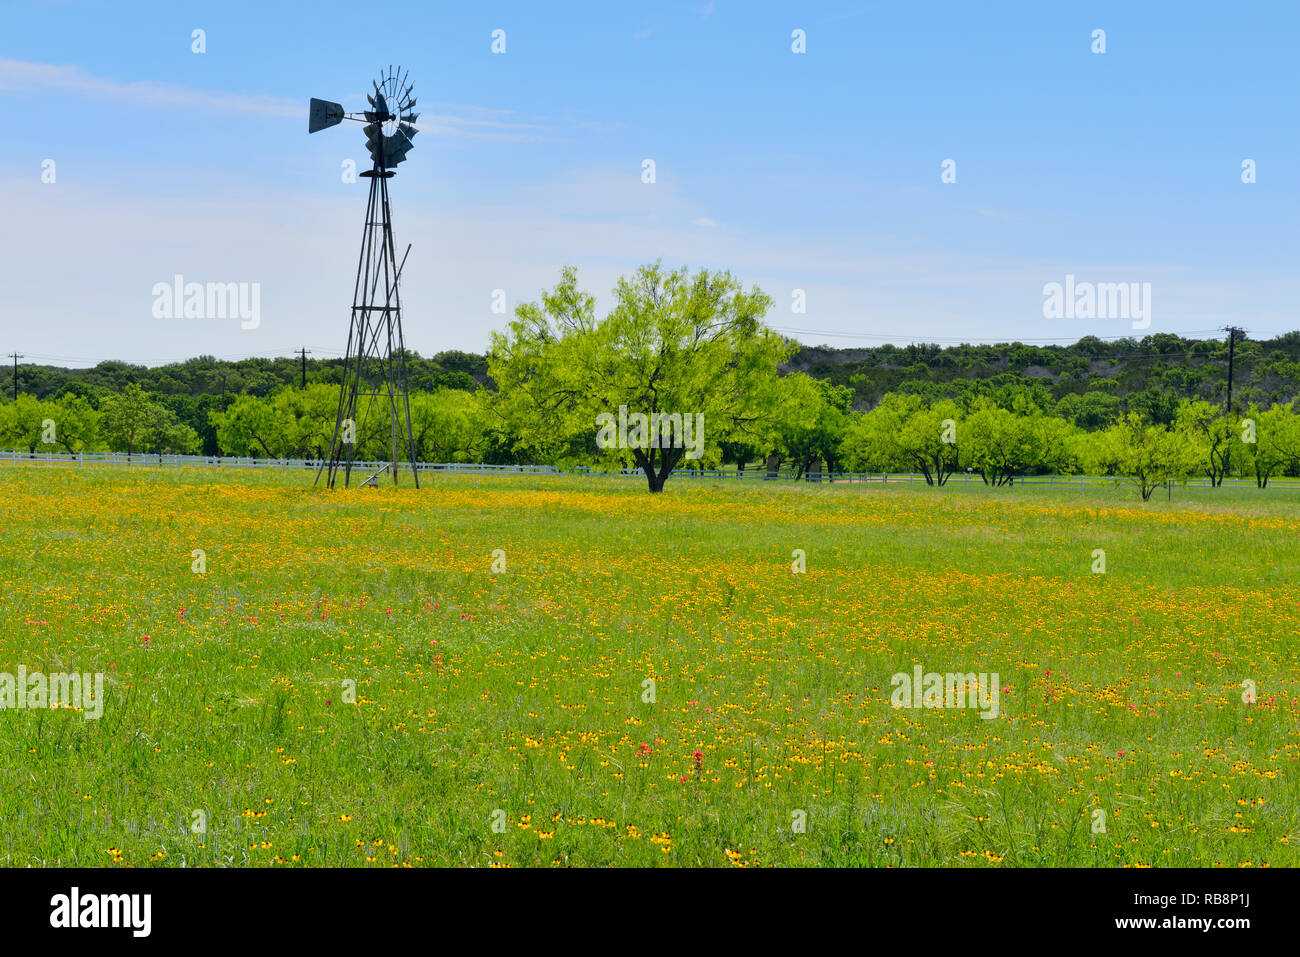 Flowers in a pasture with a wind-powered pump, Burnet County, Texas, USA Stock Photo